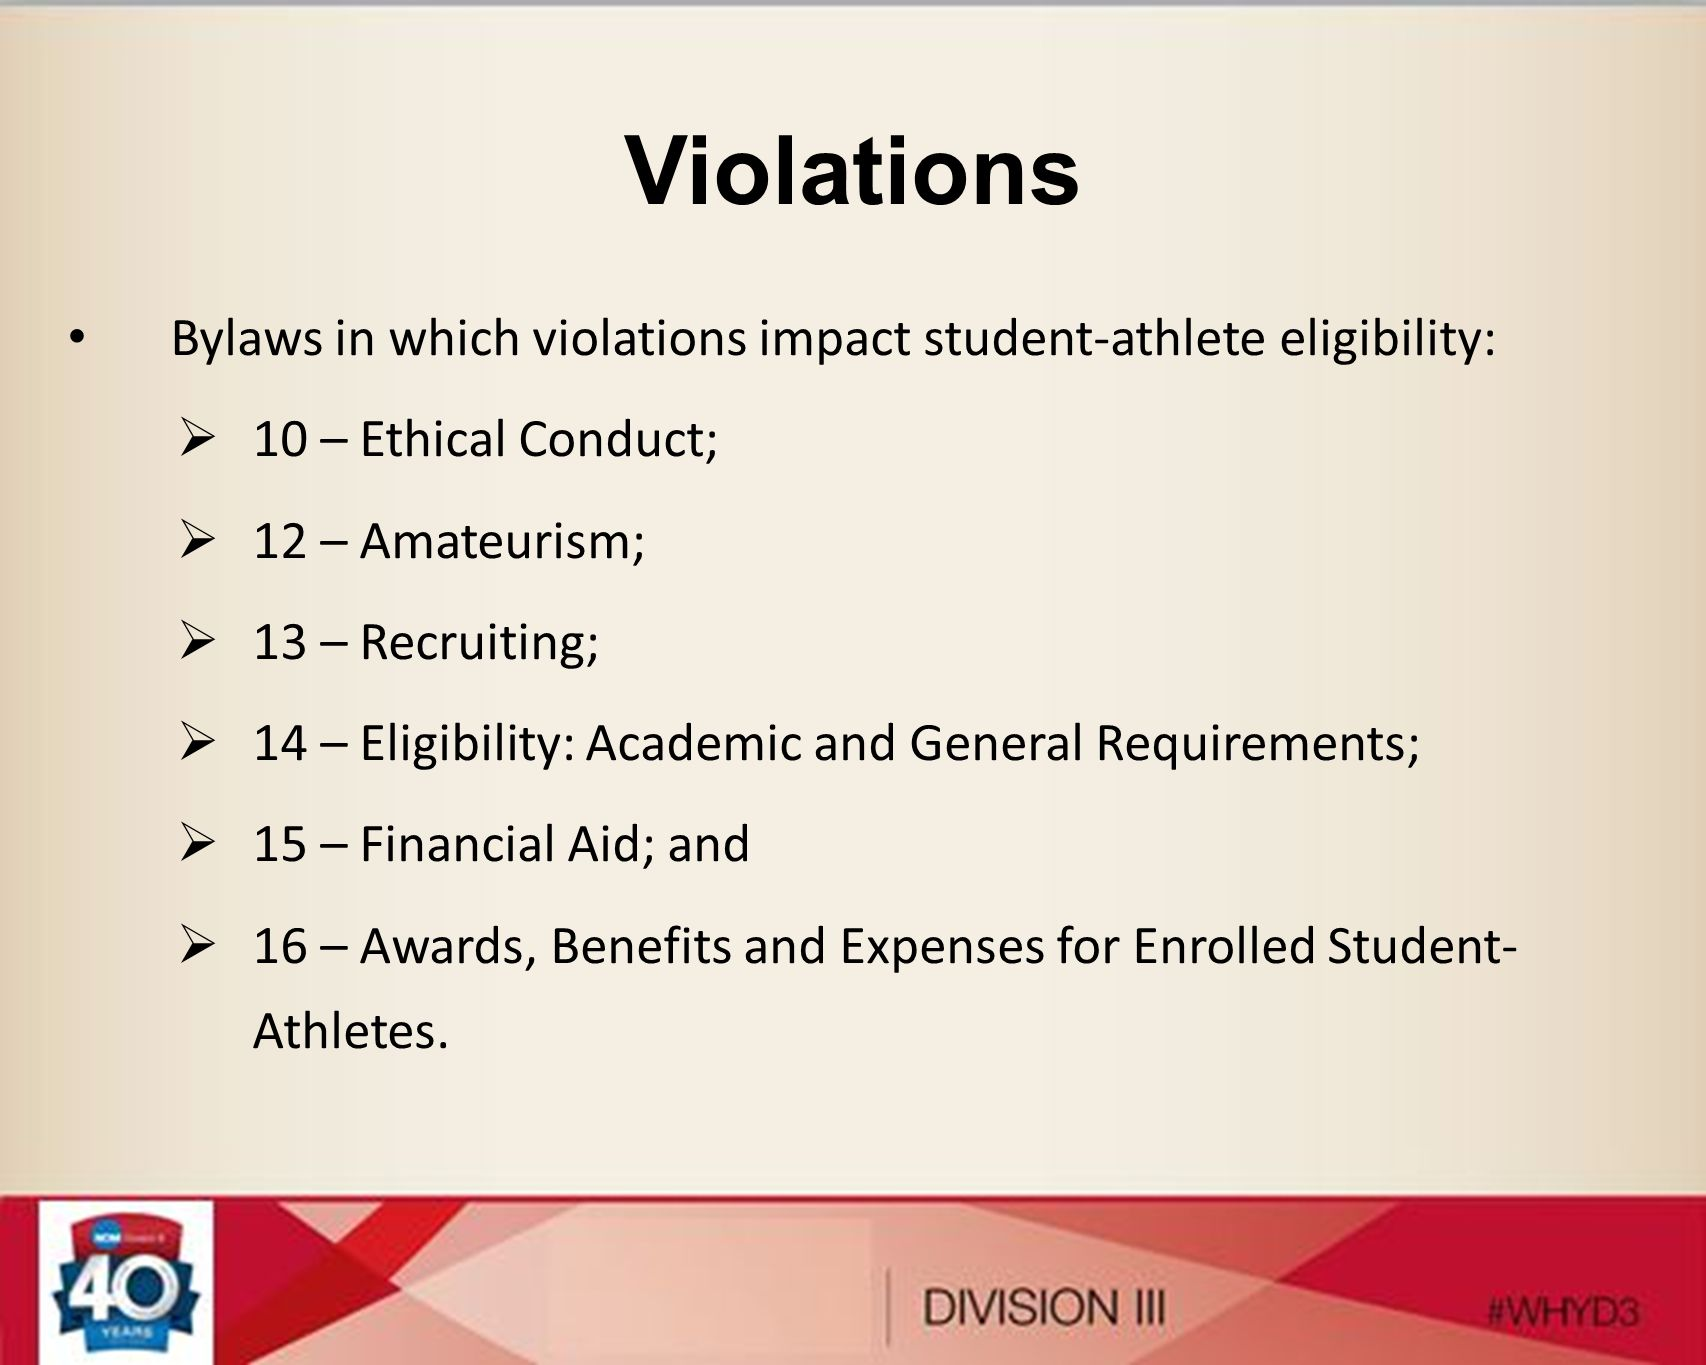 Violations Bylaws in which violations impact student-athlete eligibility: 10 – Ethical Conduct; 12 – Amateurism; 13 – Recruiting; 14 – Eligibility: Academic and General Requirements; 15 – Financial Aid; and 16 – Awards, Benefits and Expenses for Enrolled Student- Athletes.